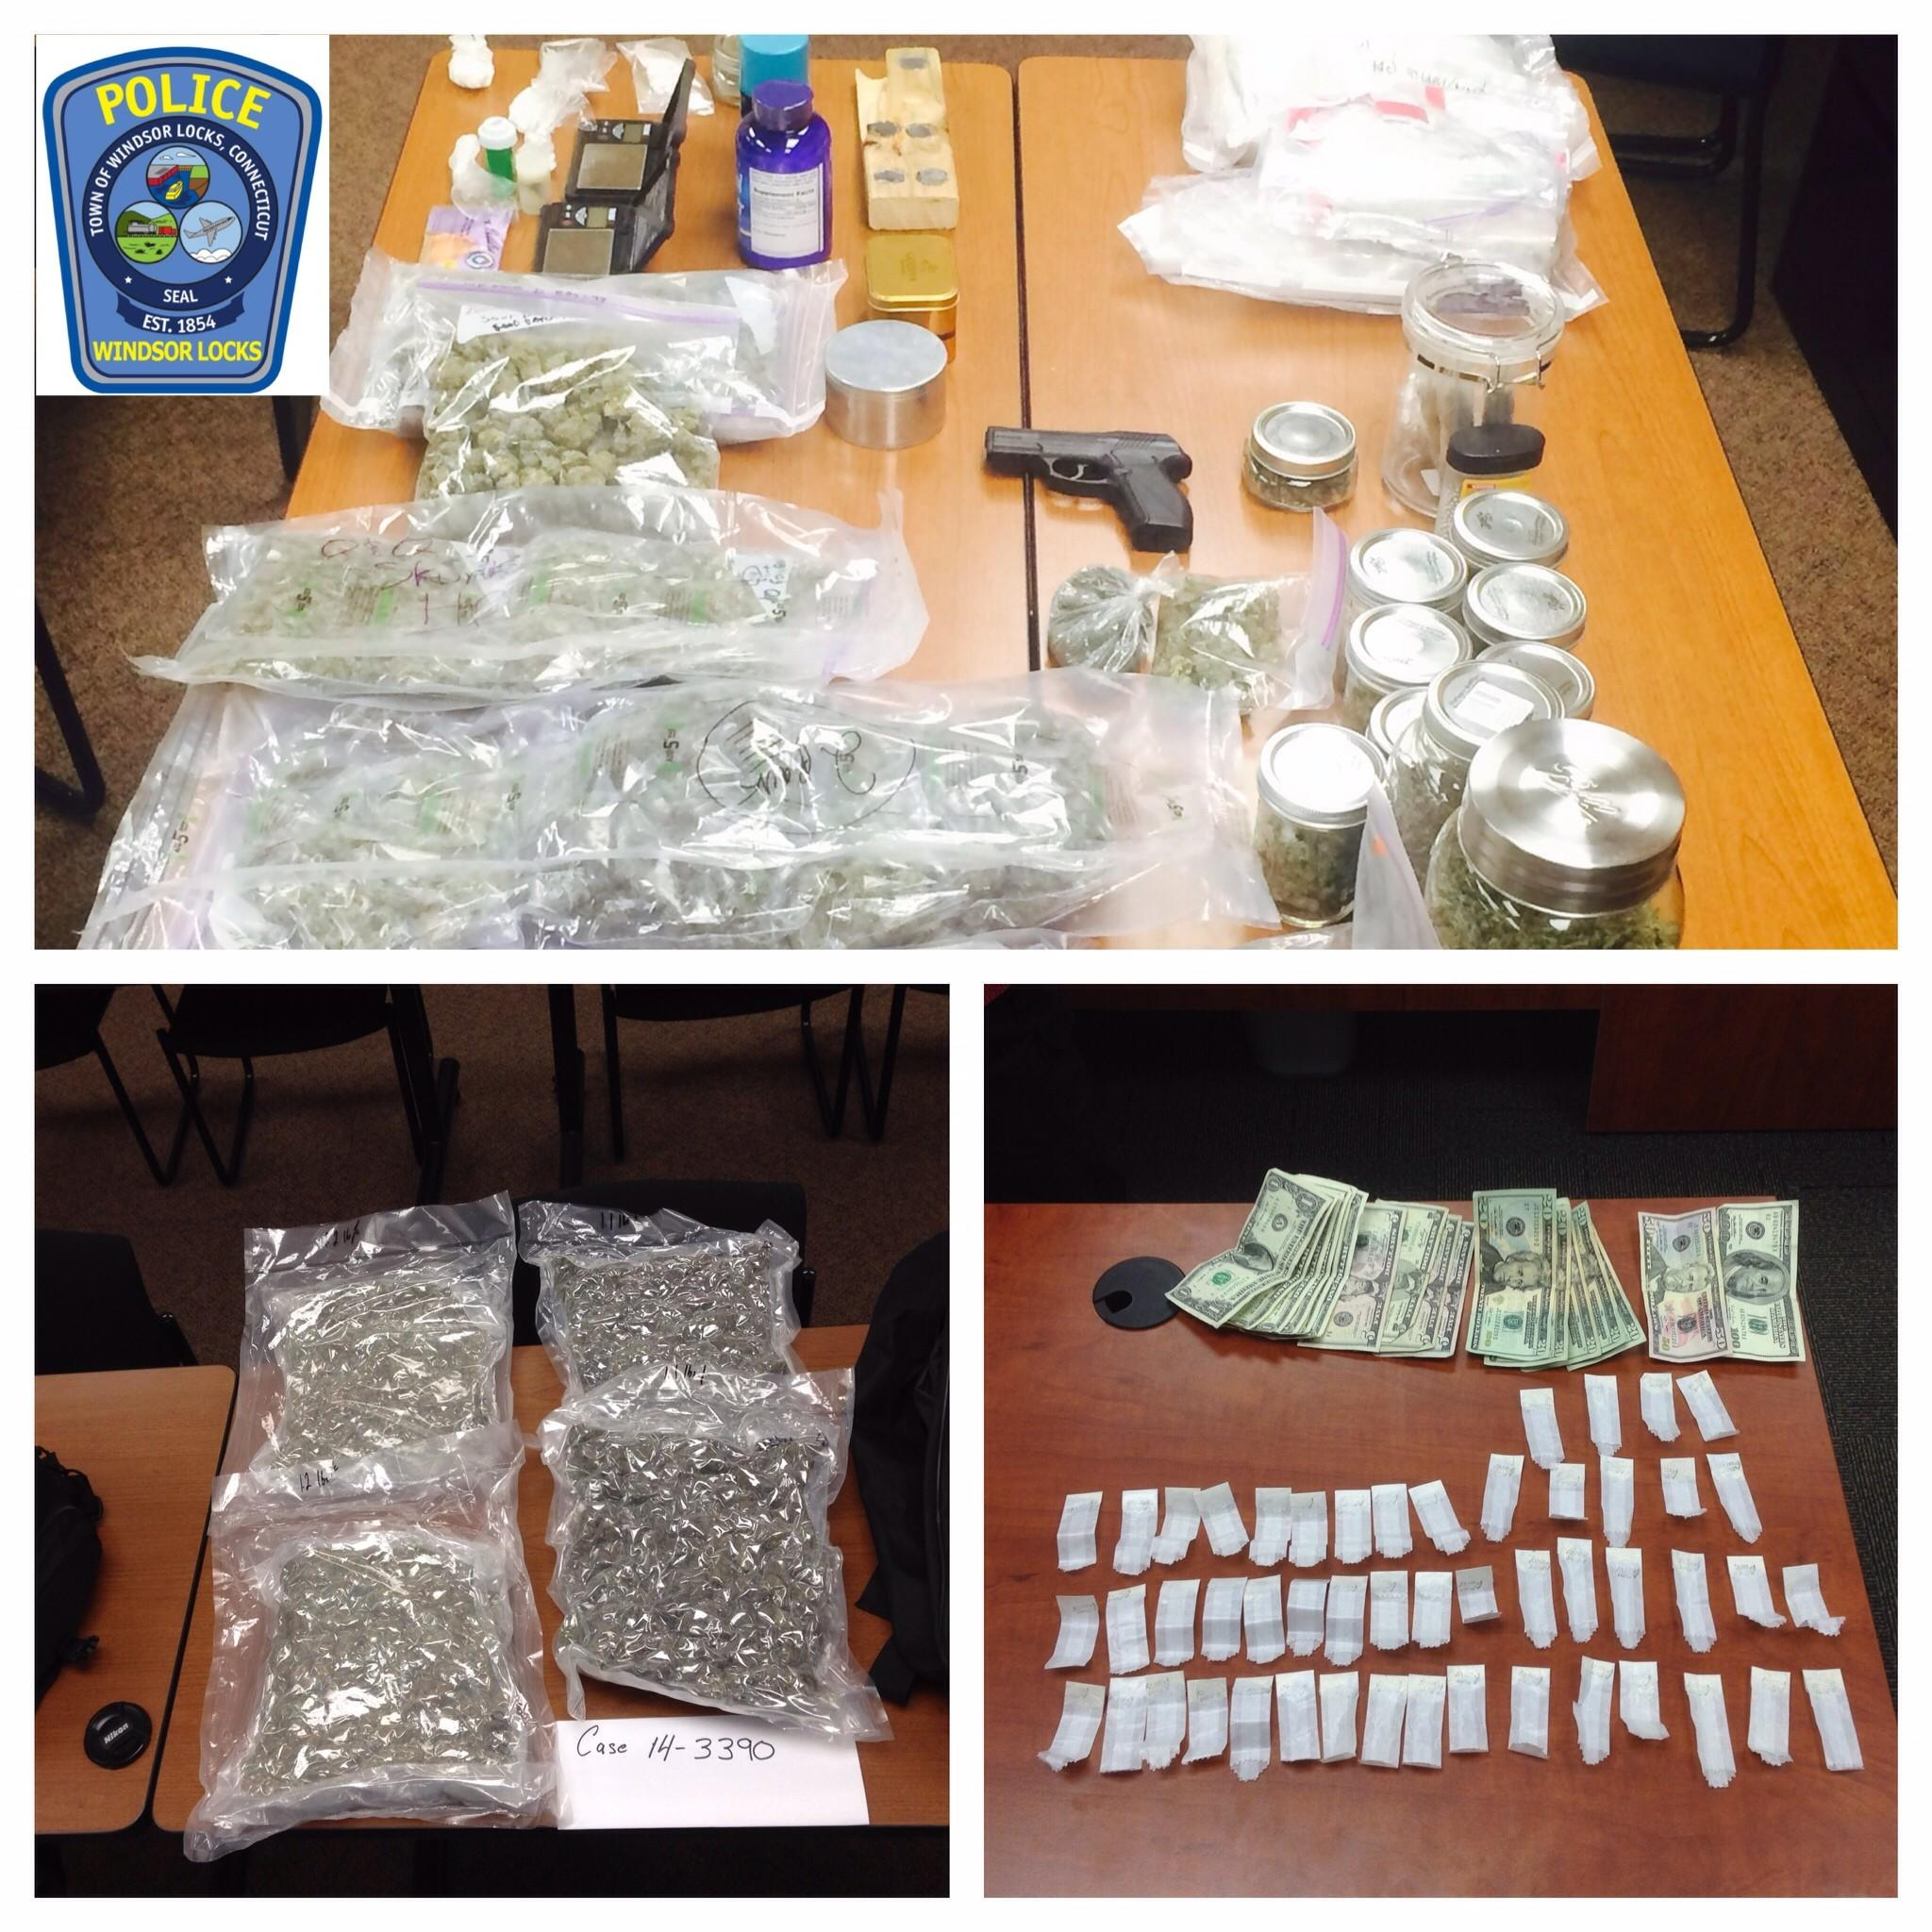 Windsor Locks Police said they obtained a search warrant for 66-A Elm Corners, which is owned by Michael Rancourt, 30, and seized about 7.5 pounds of marijuana, 1.12 ounces of cocaine, 187 prescription pills including oxycodone, and codeine, and about $60,000 in cash. Rancourt was charged with operating a drug factory, sale of narcotics, sale of marijuana, sale of prescription drugs and use of drug paraphernalia, police said.